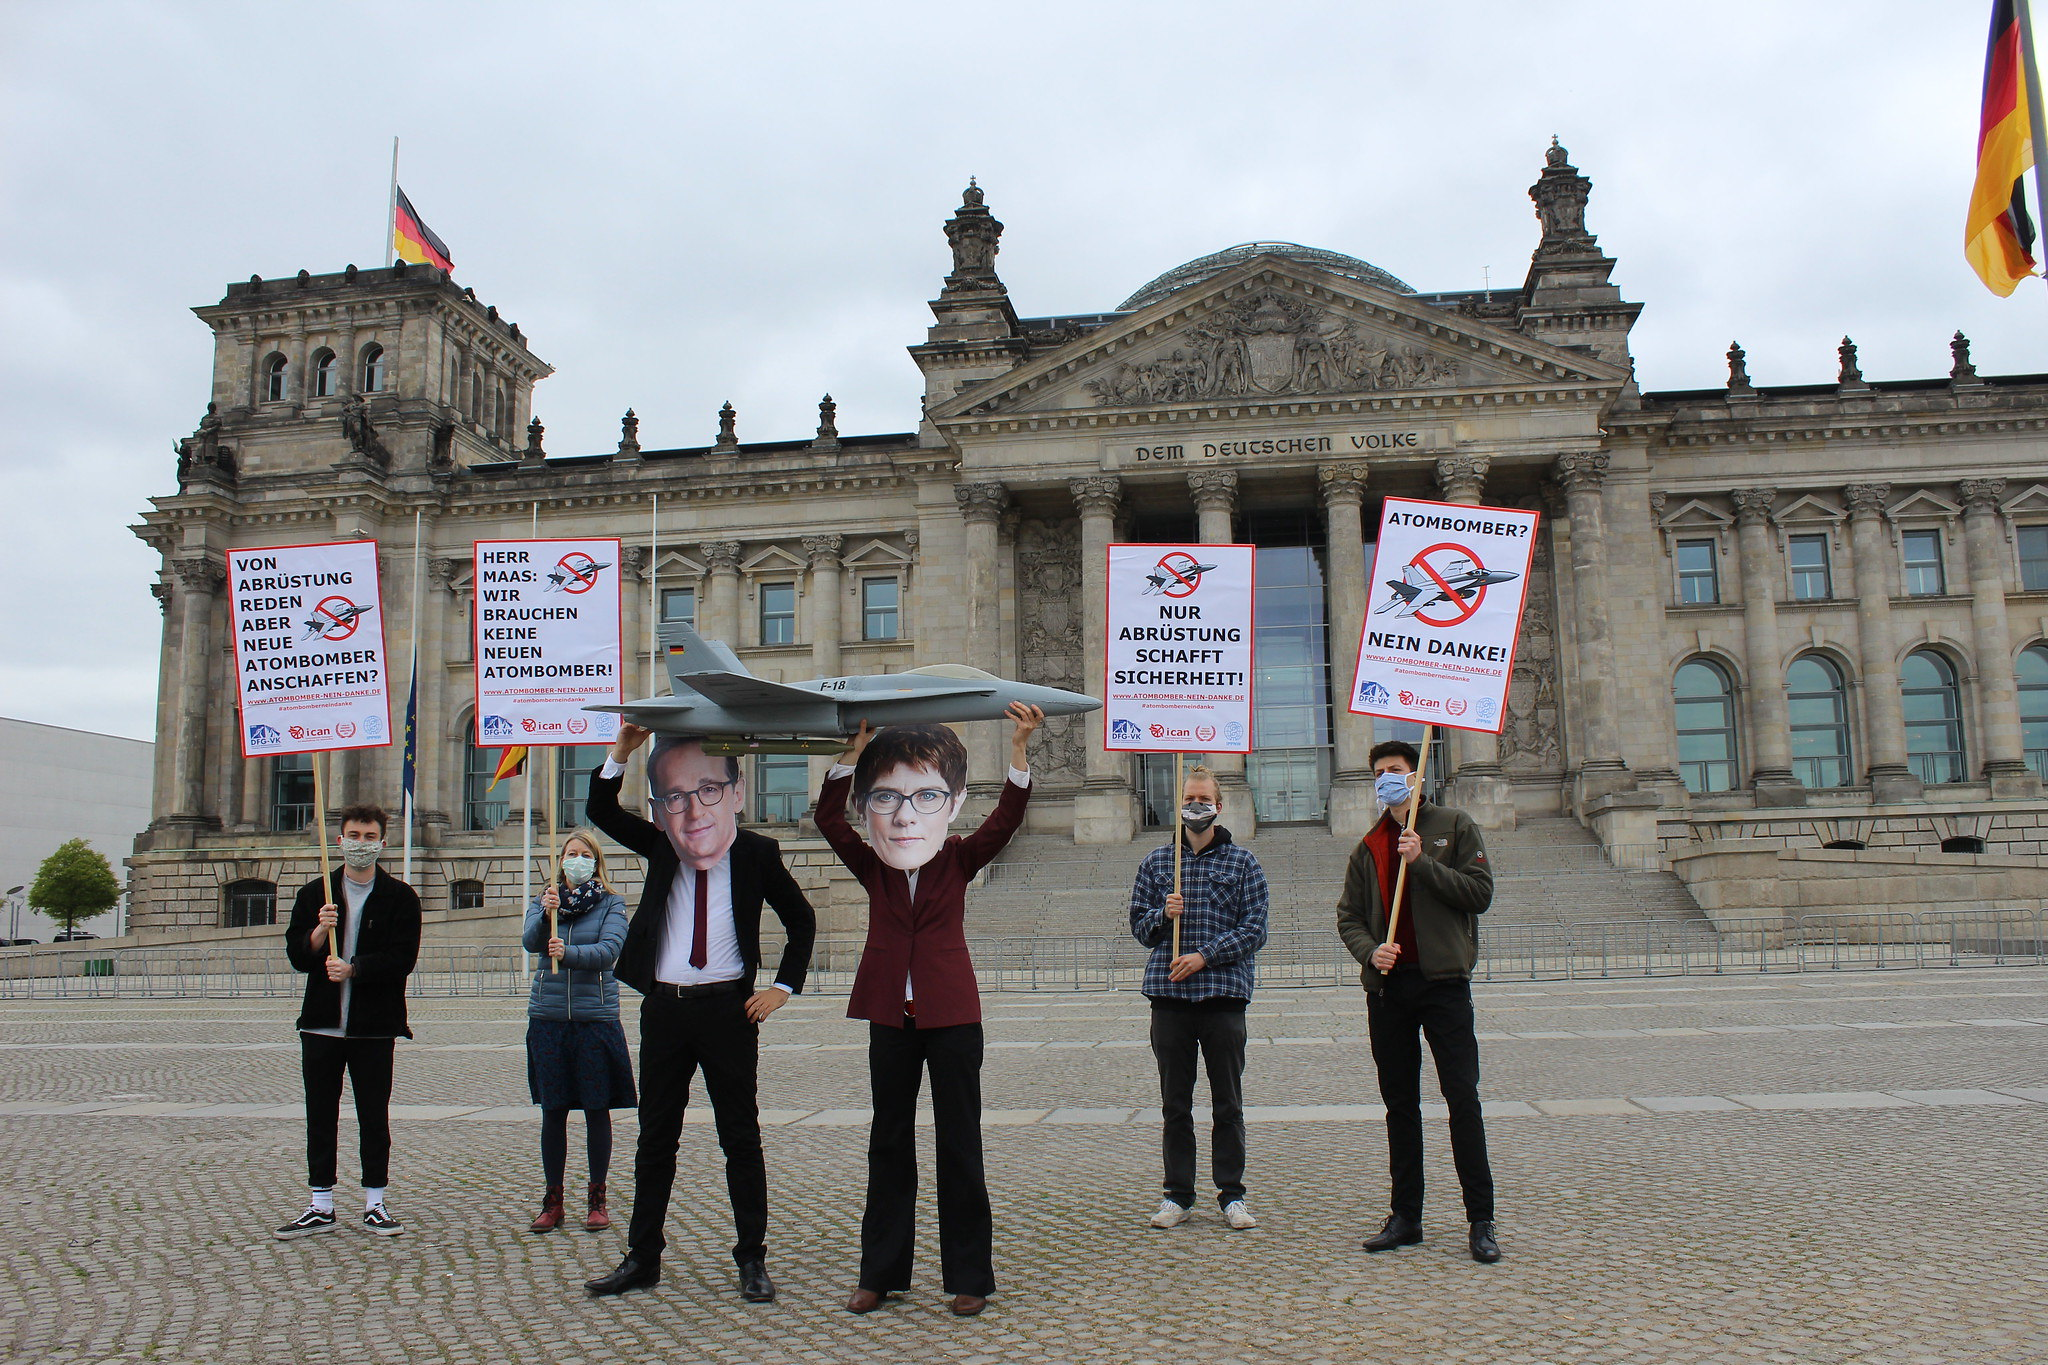 German Campaigners protesting against new fighter jets